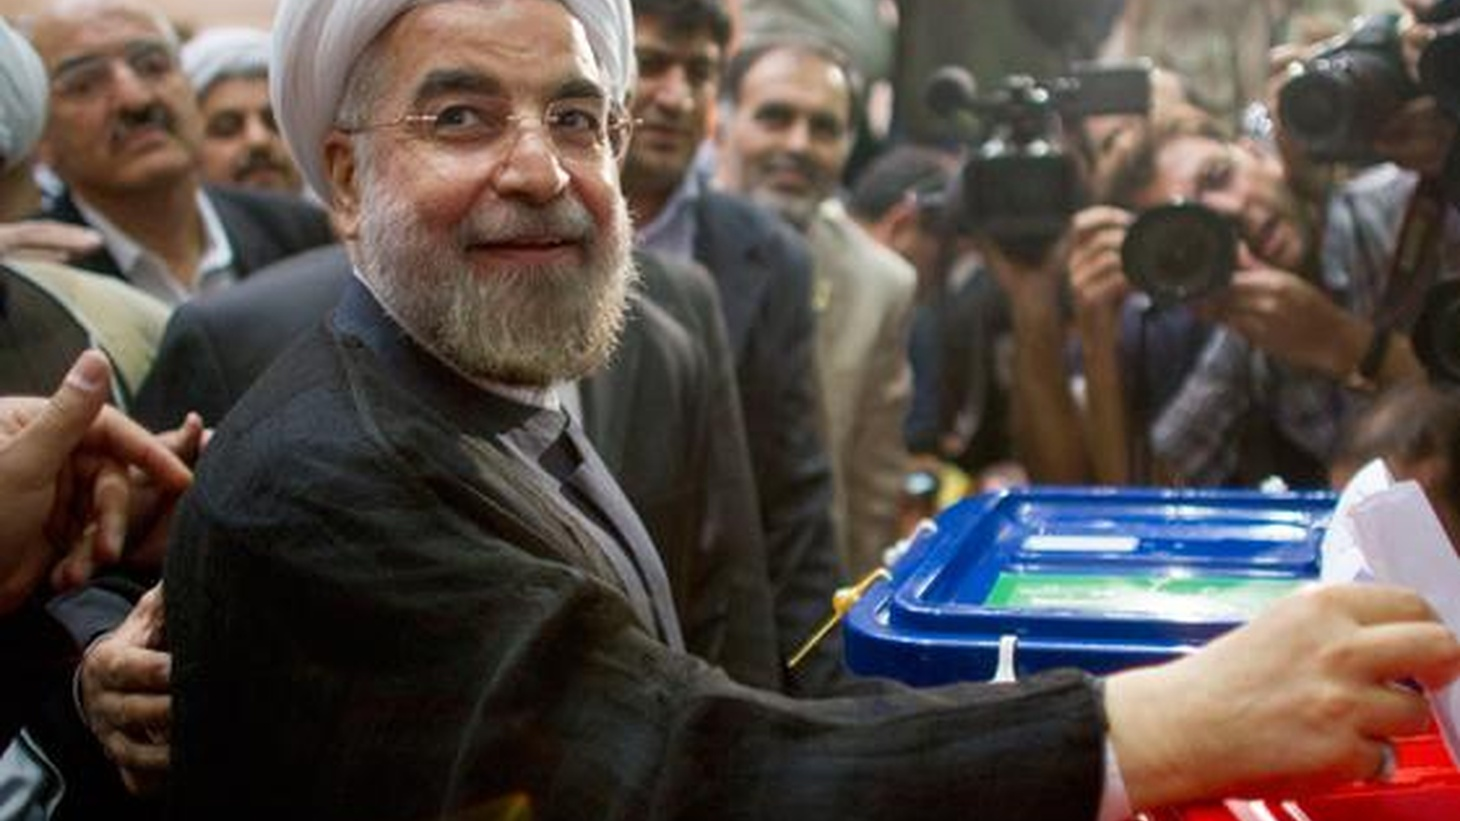 What does the election of a new president in Iran mean for its nuclear weapons program, its future relations with the US and Israel, and the people of Iran?